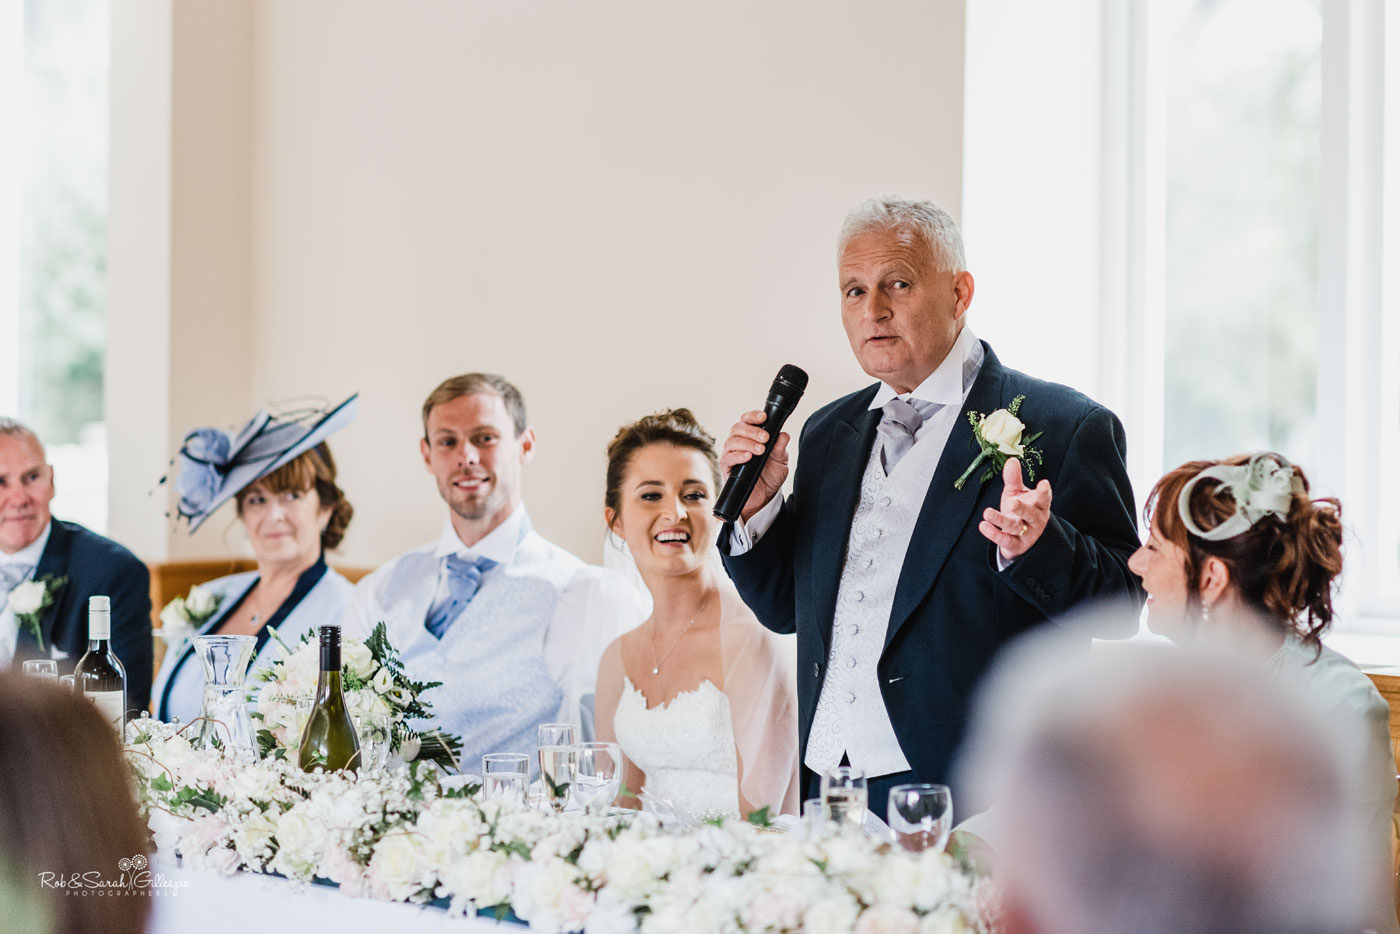 Wedding speeches at Delbury Hall in Shropshire